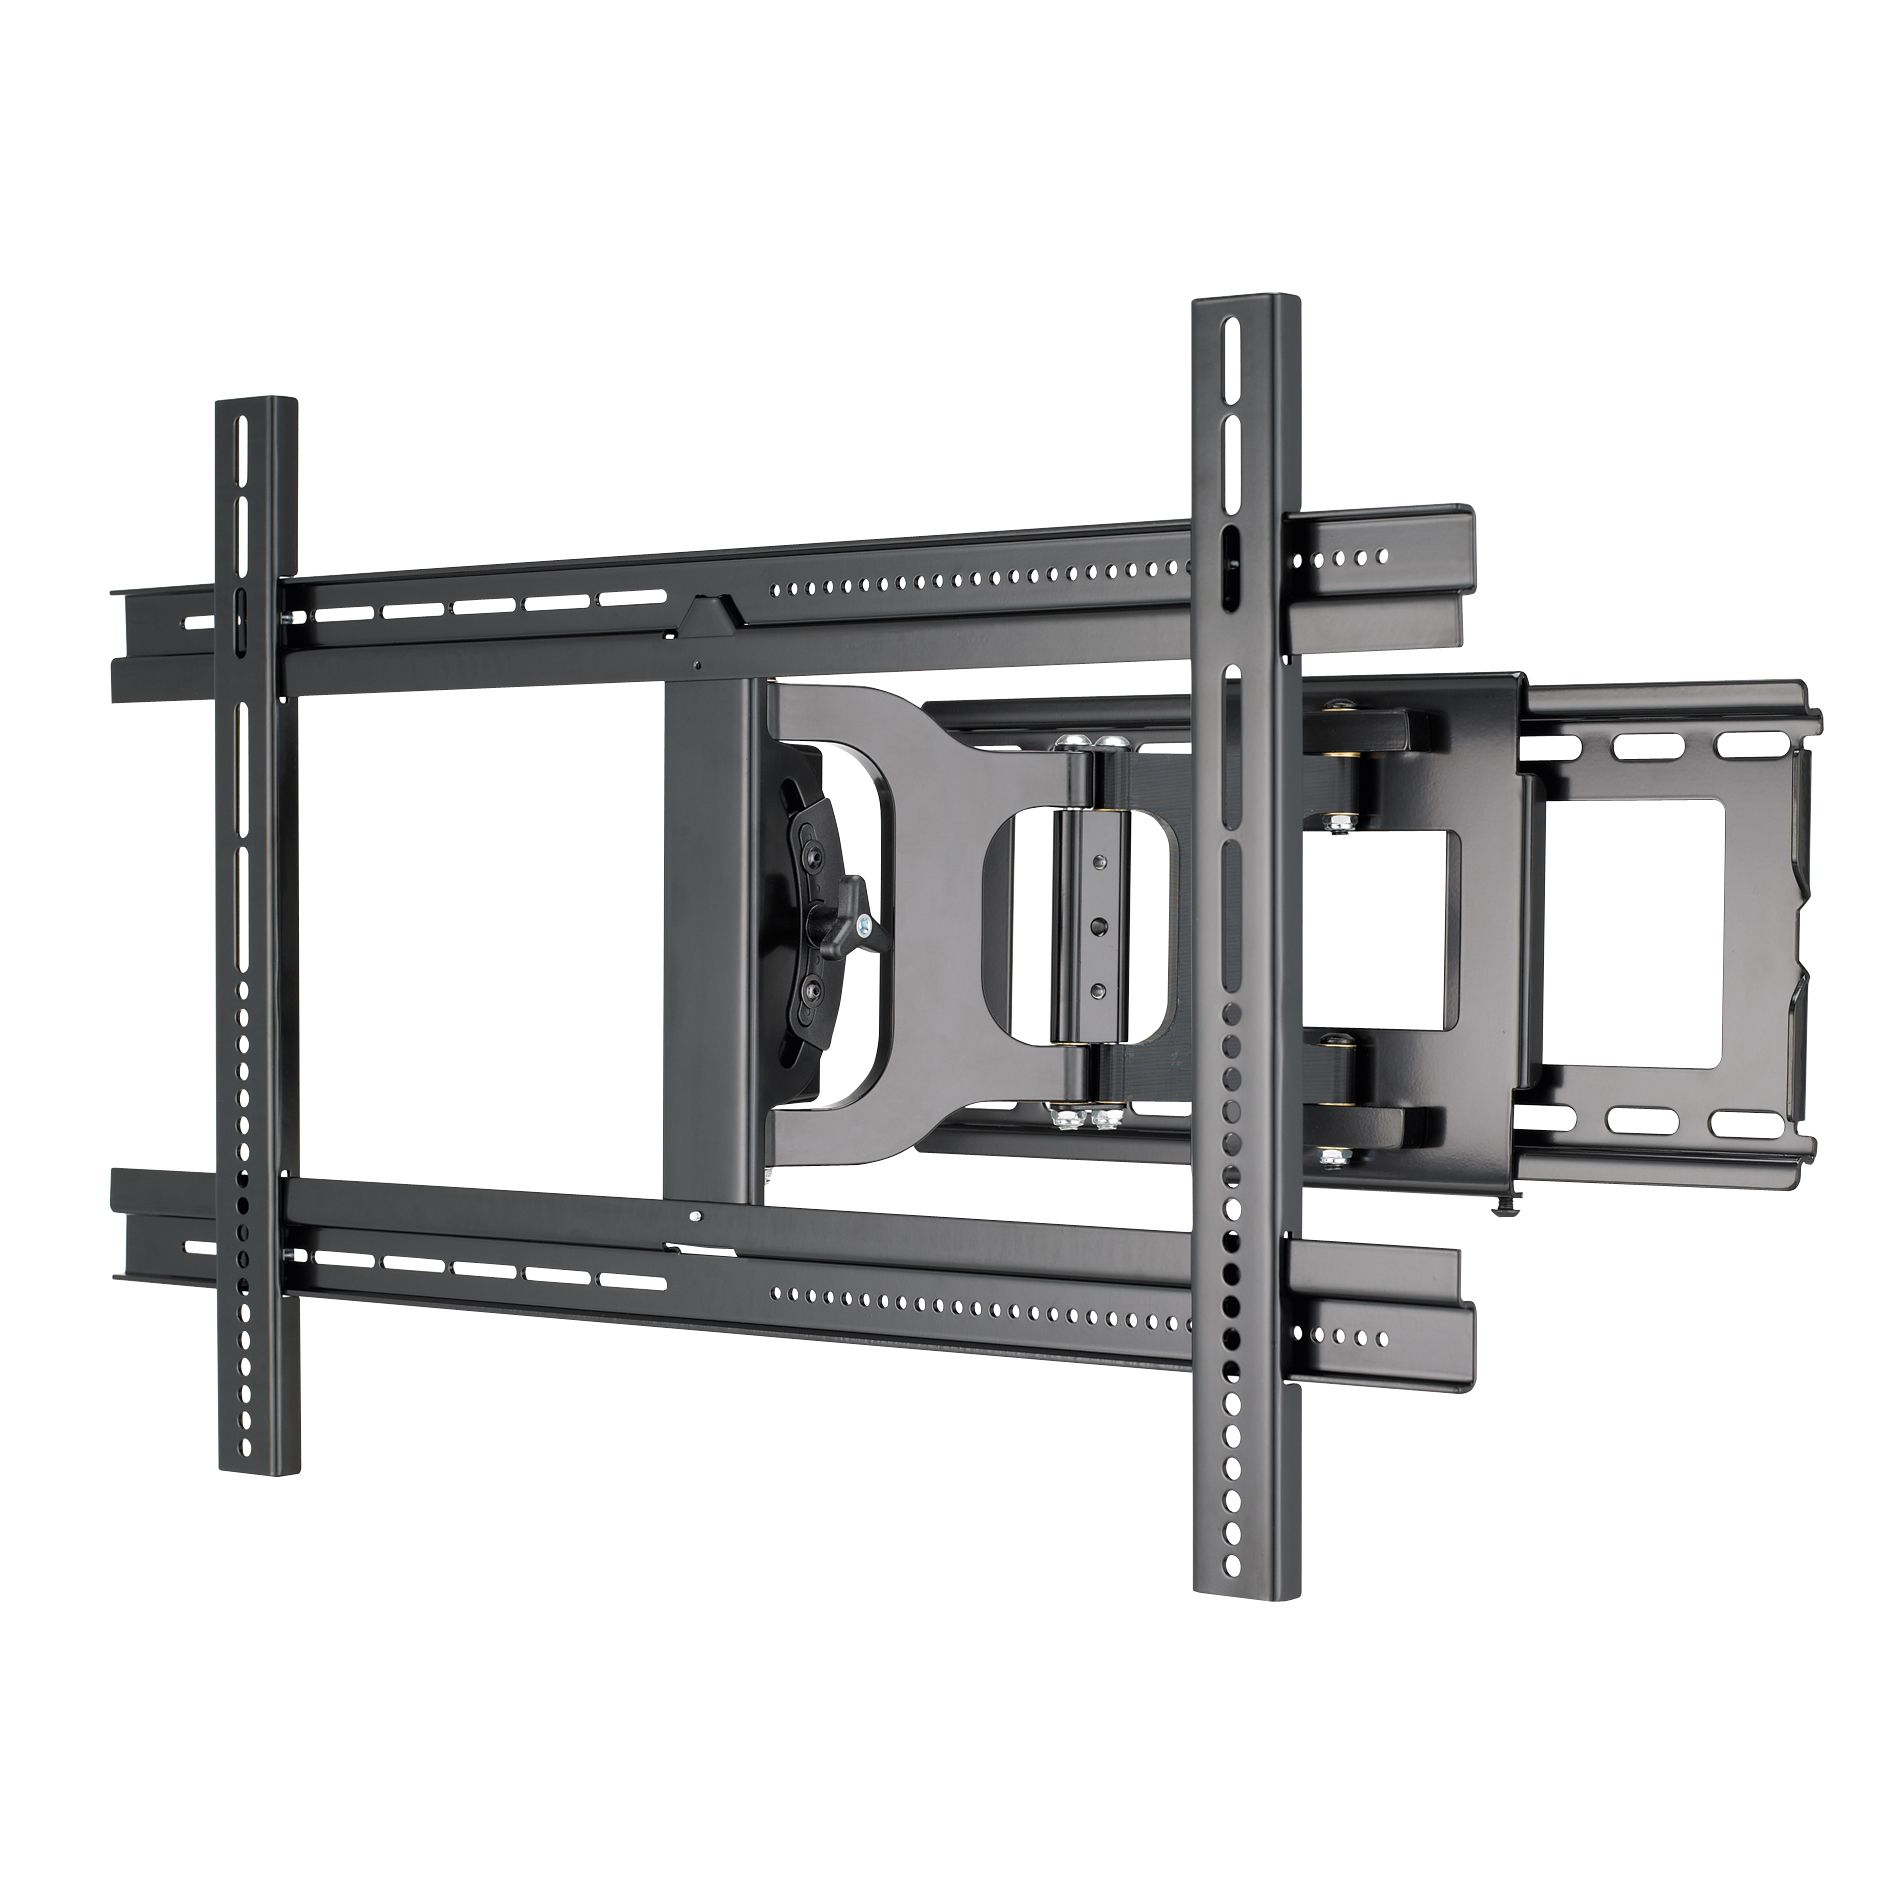 We Offer All Types Of Mounts For TV Installation New York